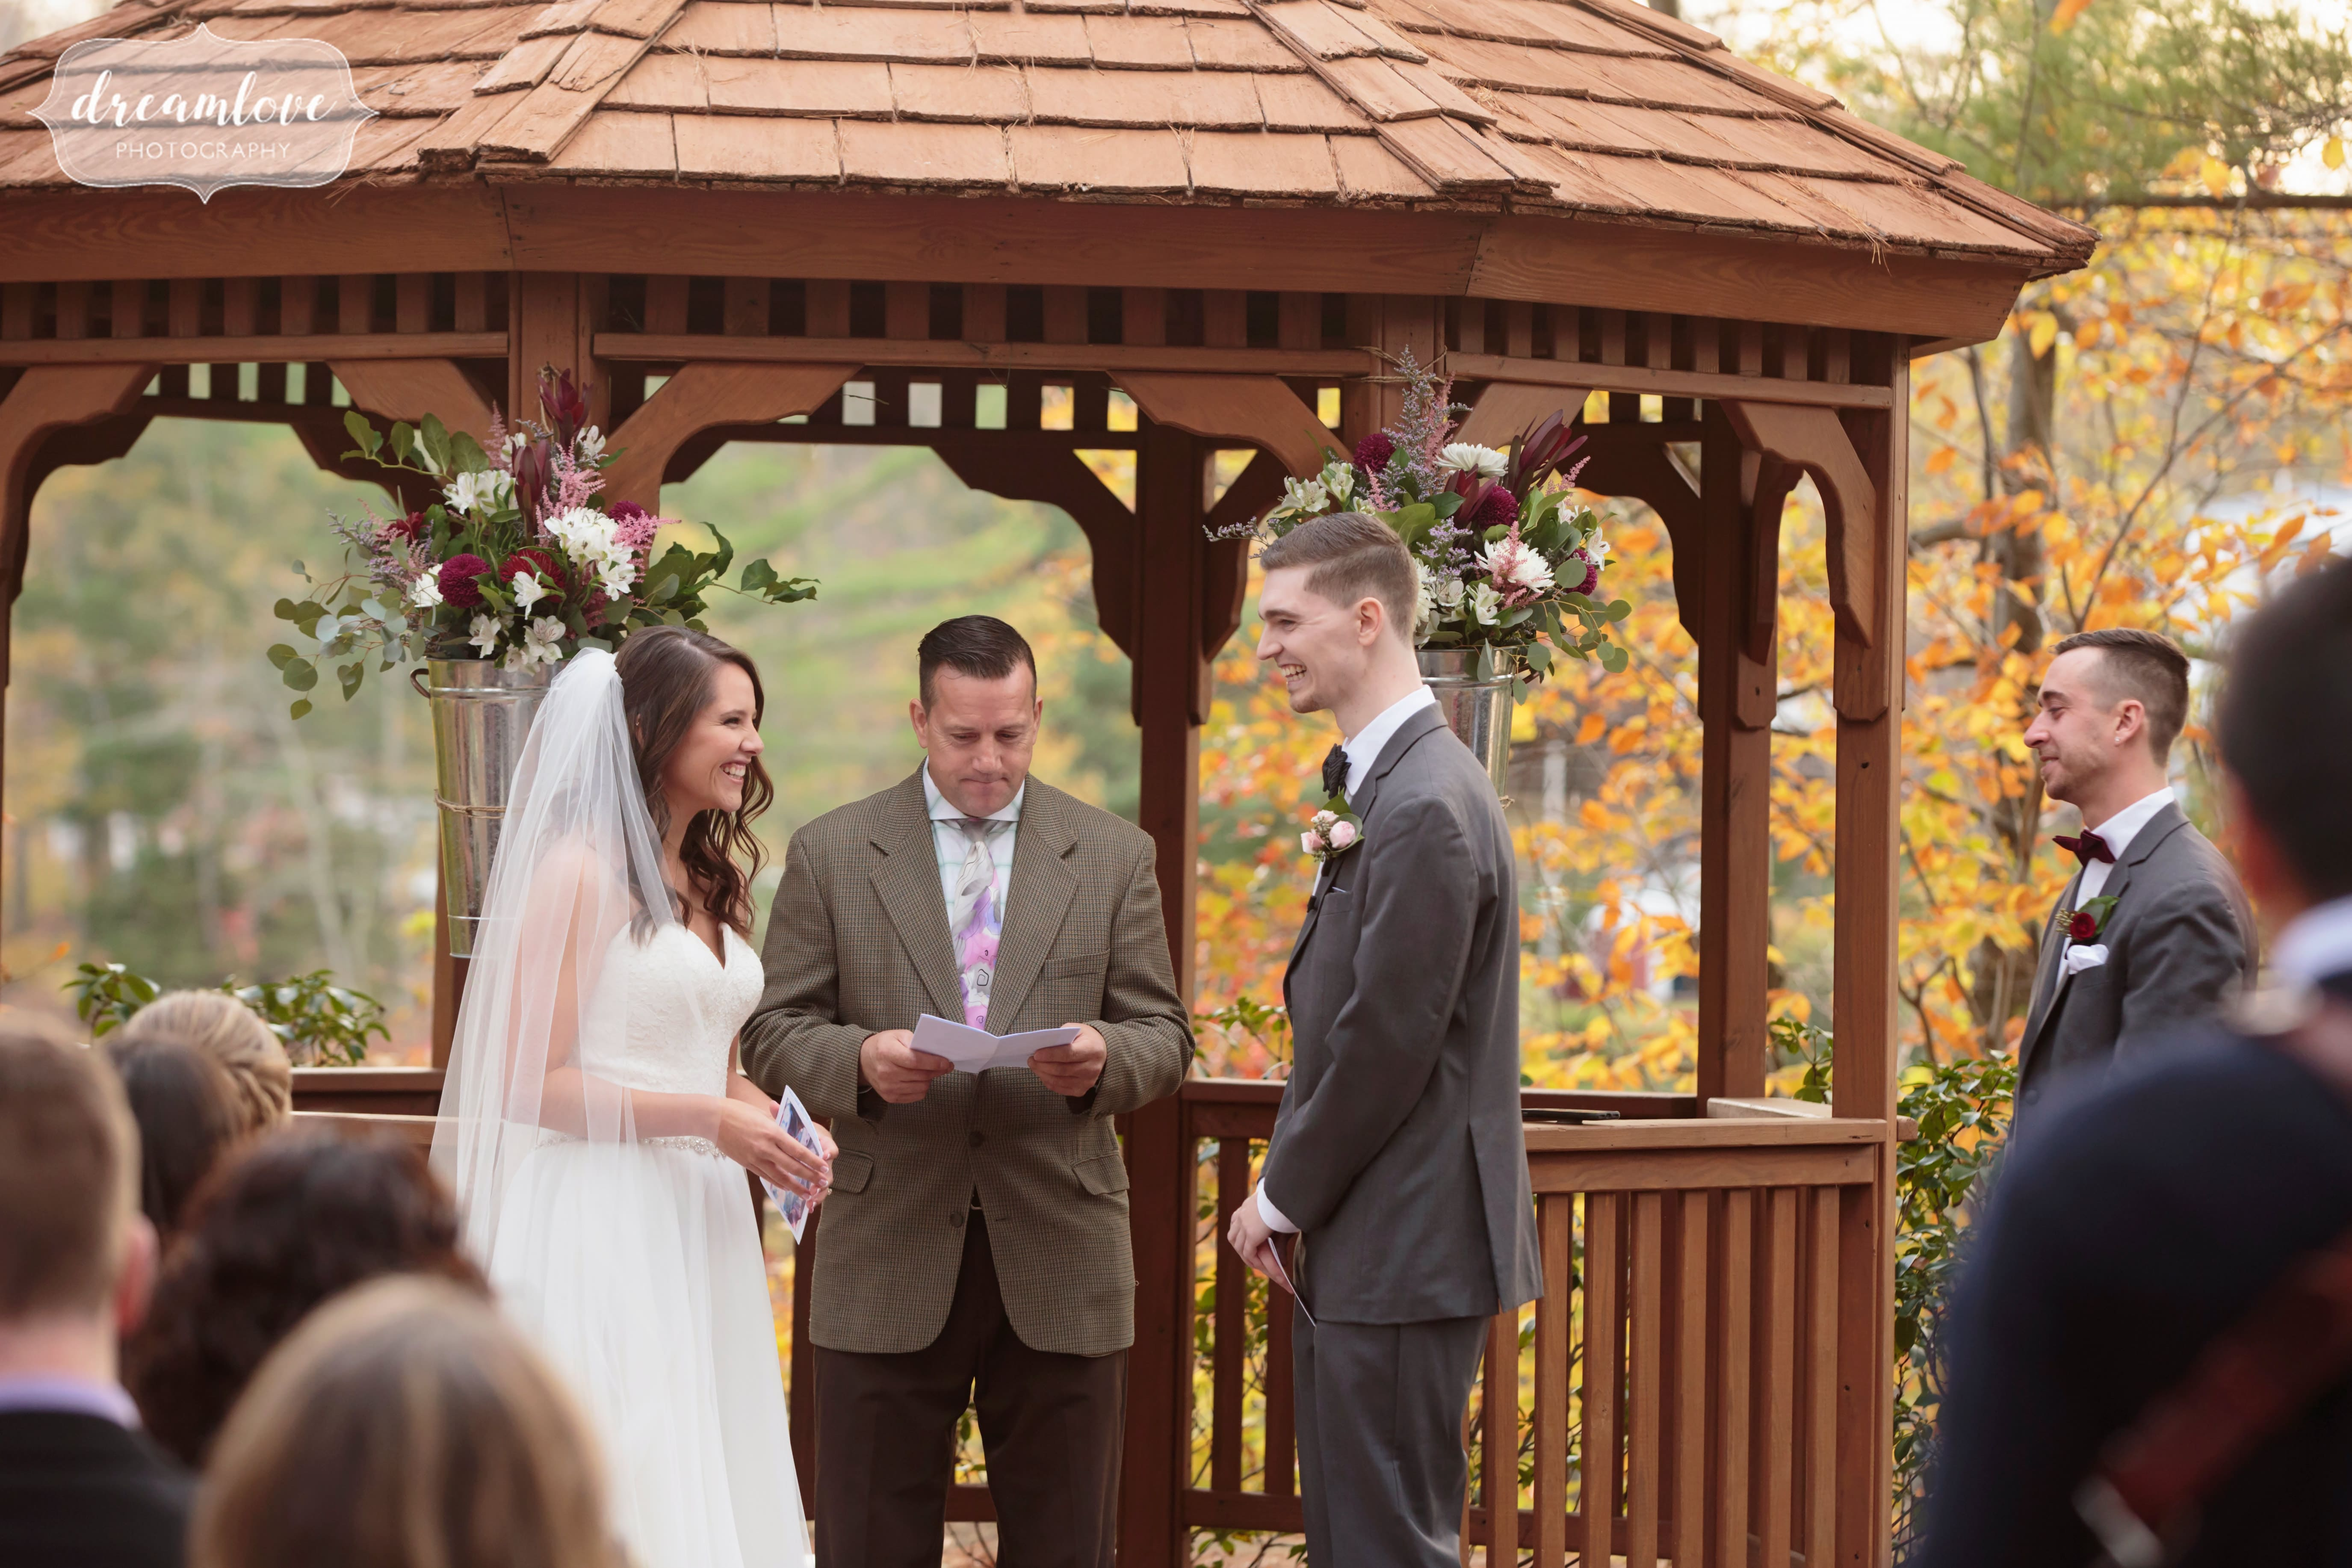 This fall outdoor wedding venue in CT is beautiful in November.